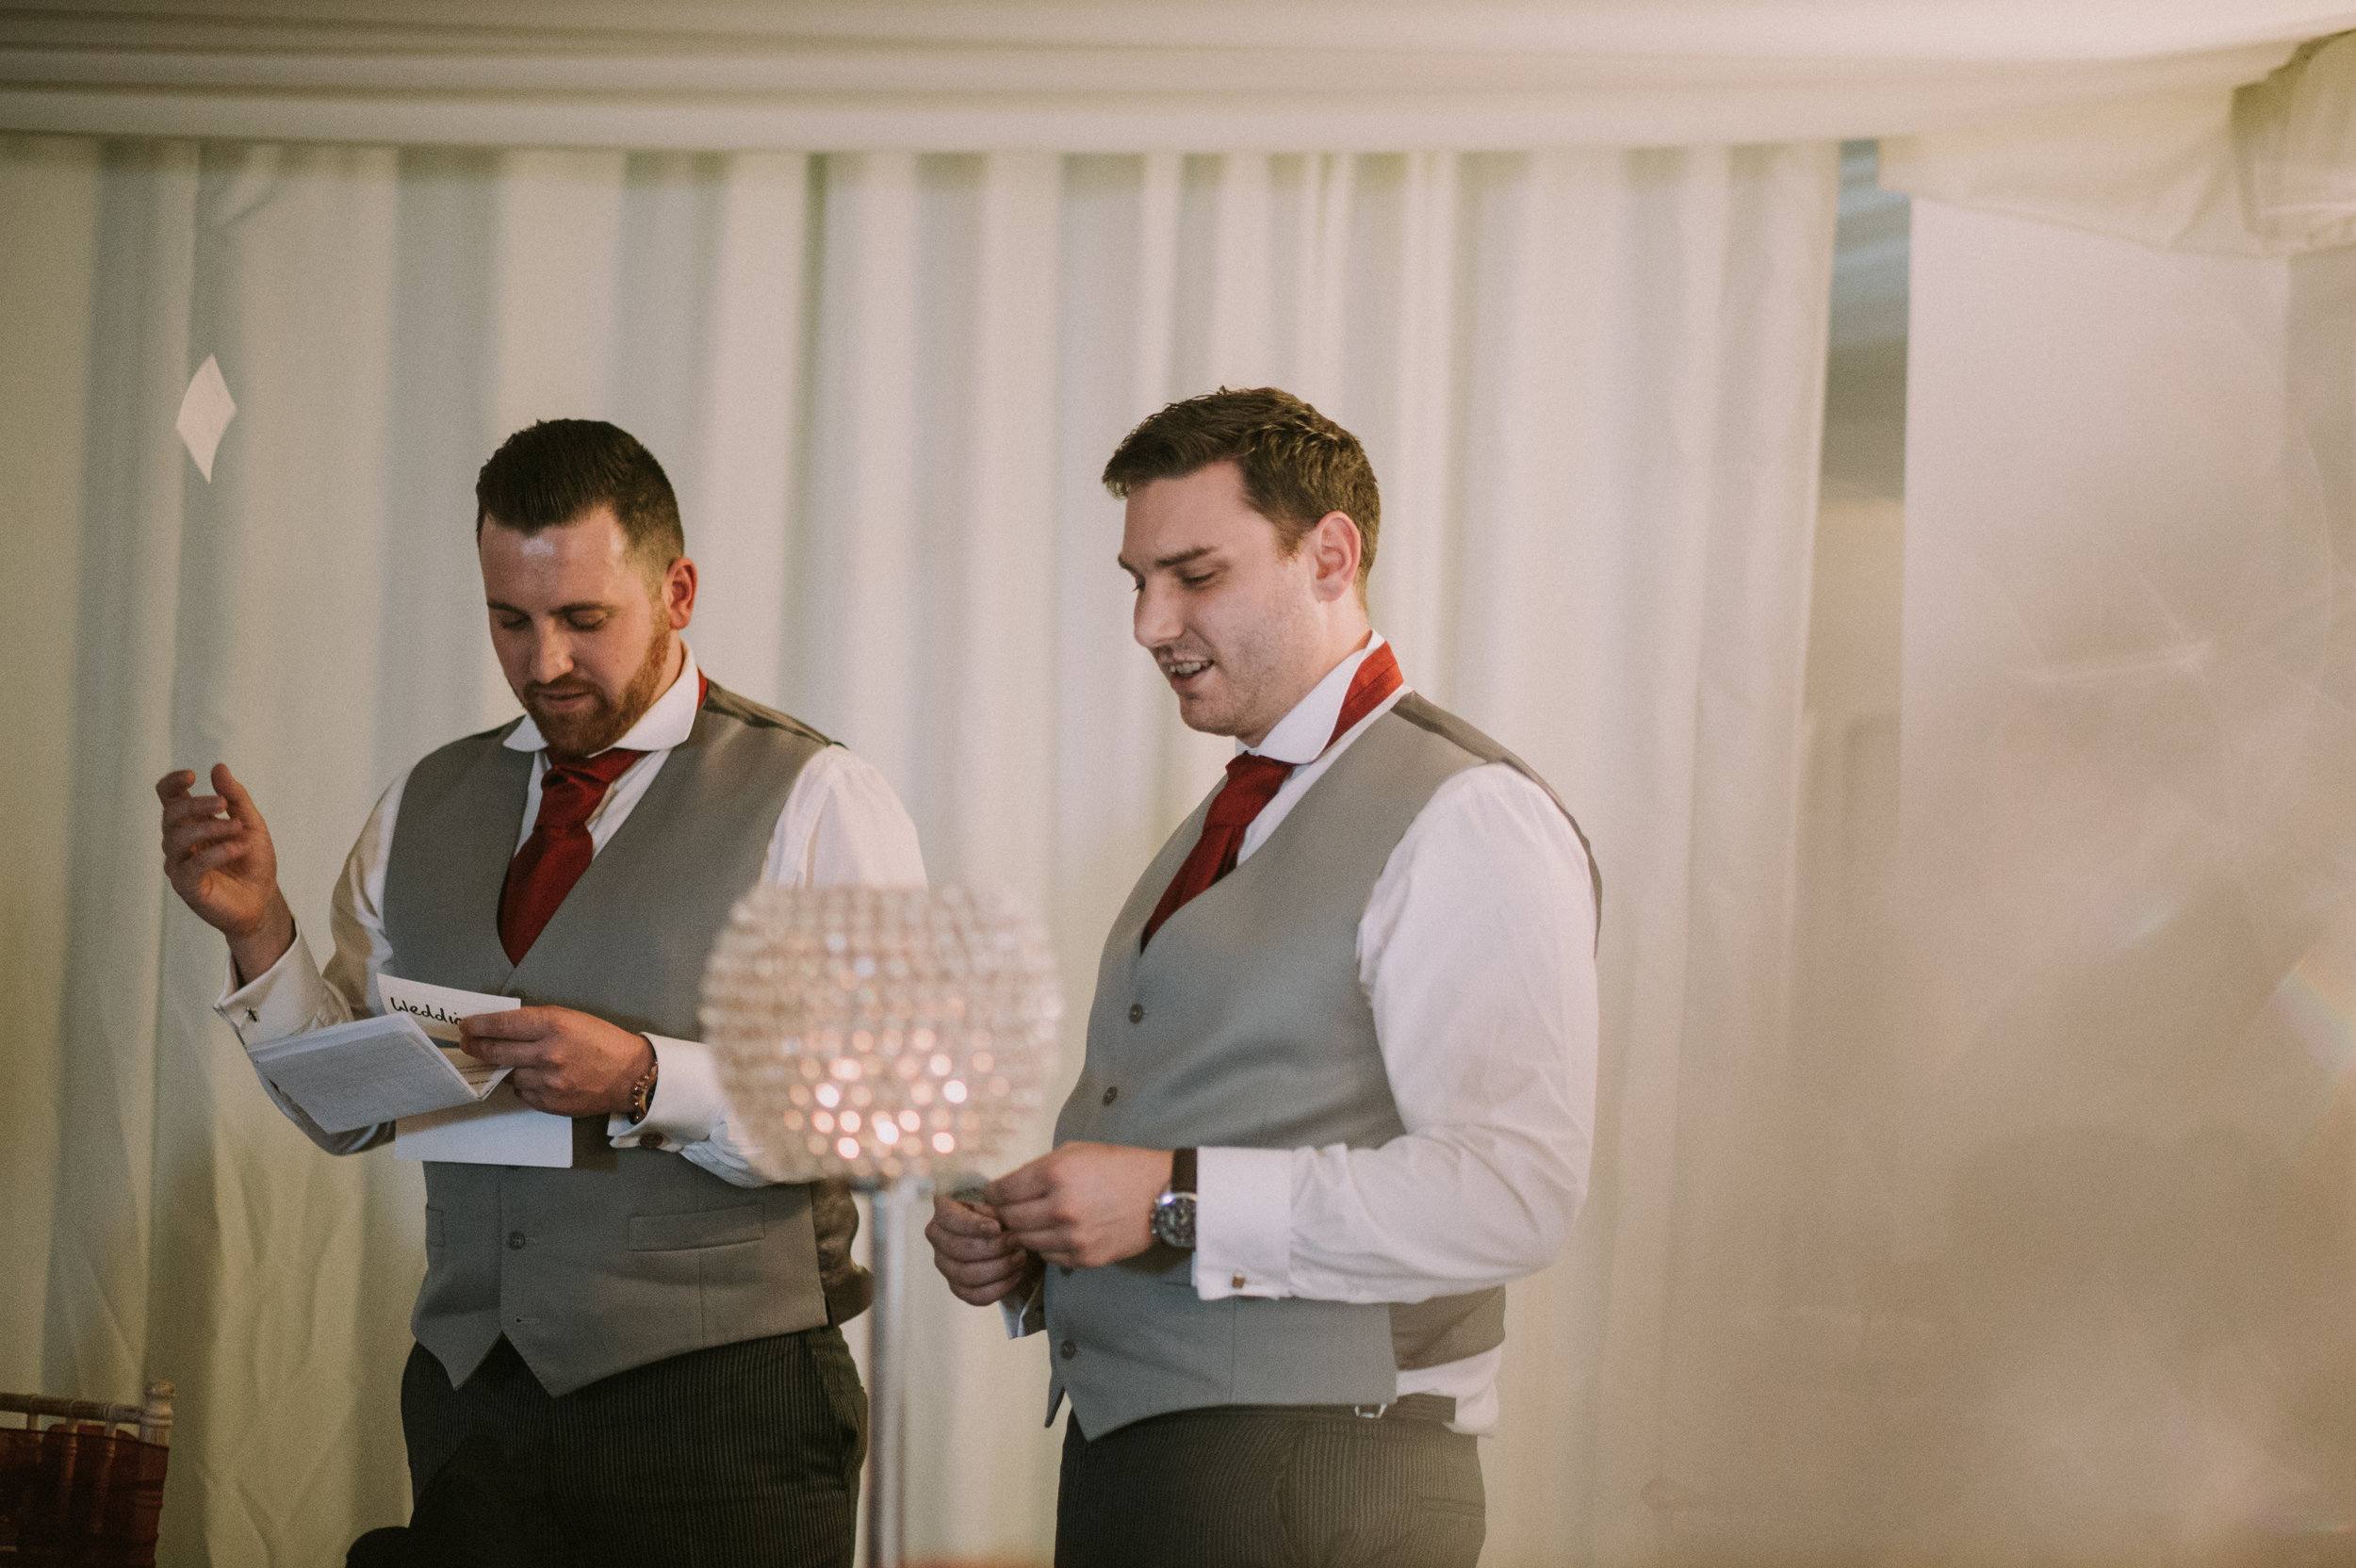 southdowns-manor-sussex-winter-wedding-photography-speeches-81